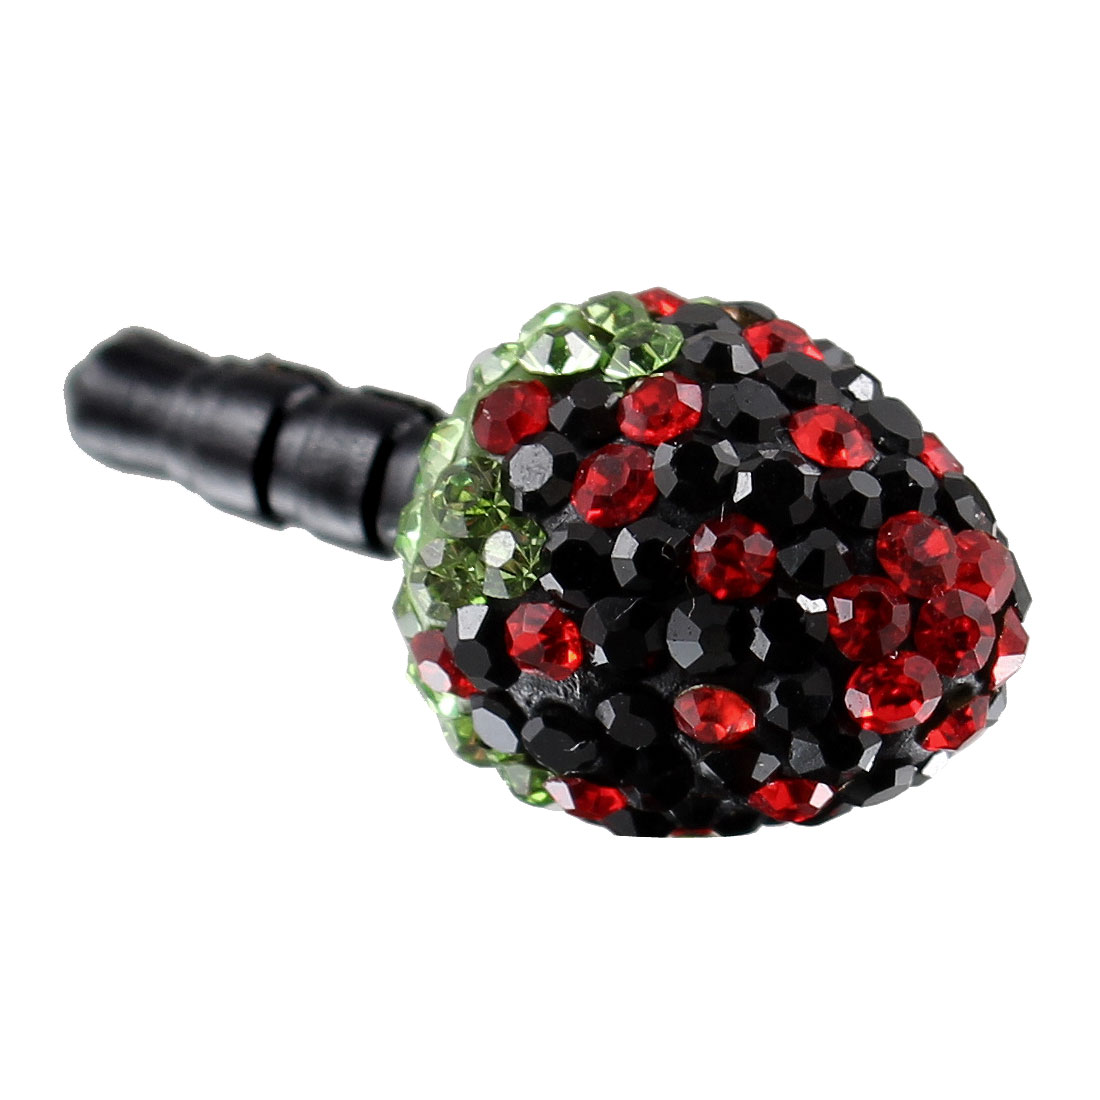 Bling Black Crystal Strawberry 3.5mm Anti Dust Ear Cap for Phone